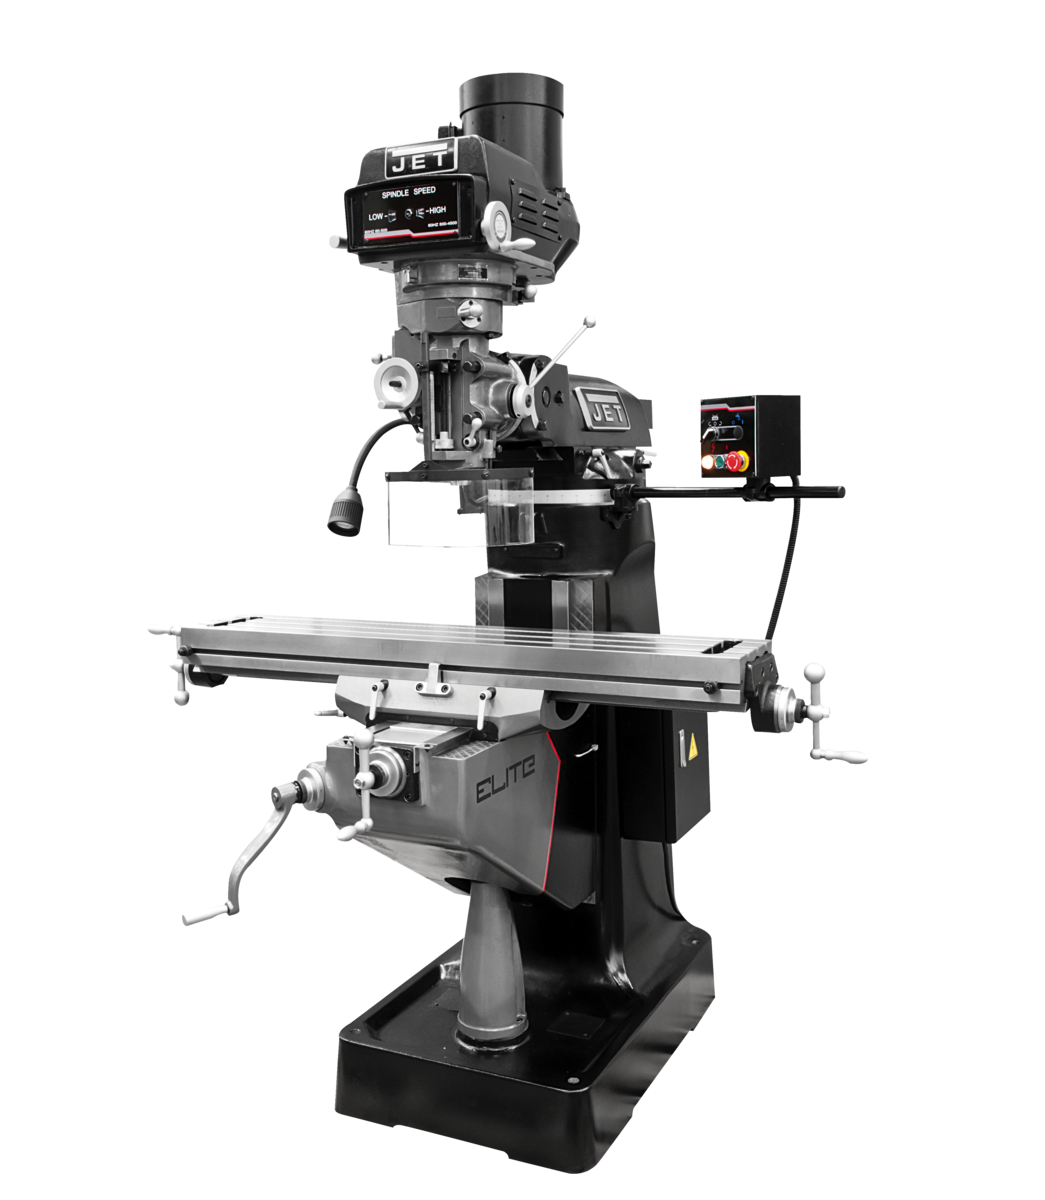 ETM-949 Mill with 3-Axis ACU-RITE 303 (Knee) DRO and Servo X-Axis Powerfeed